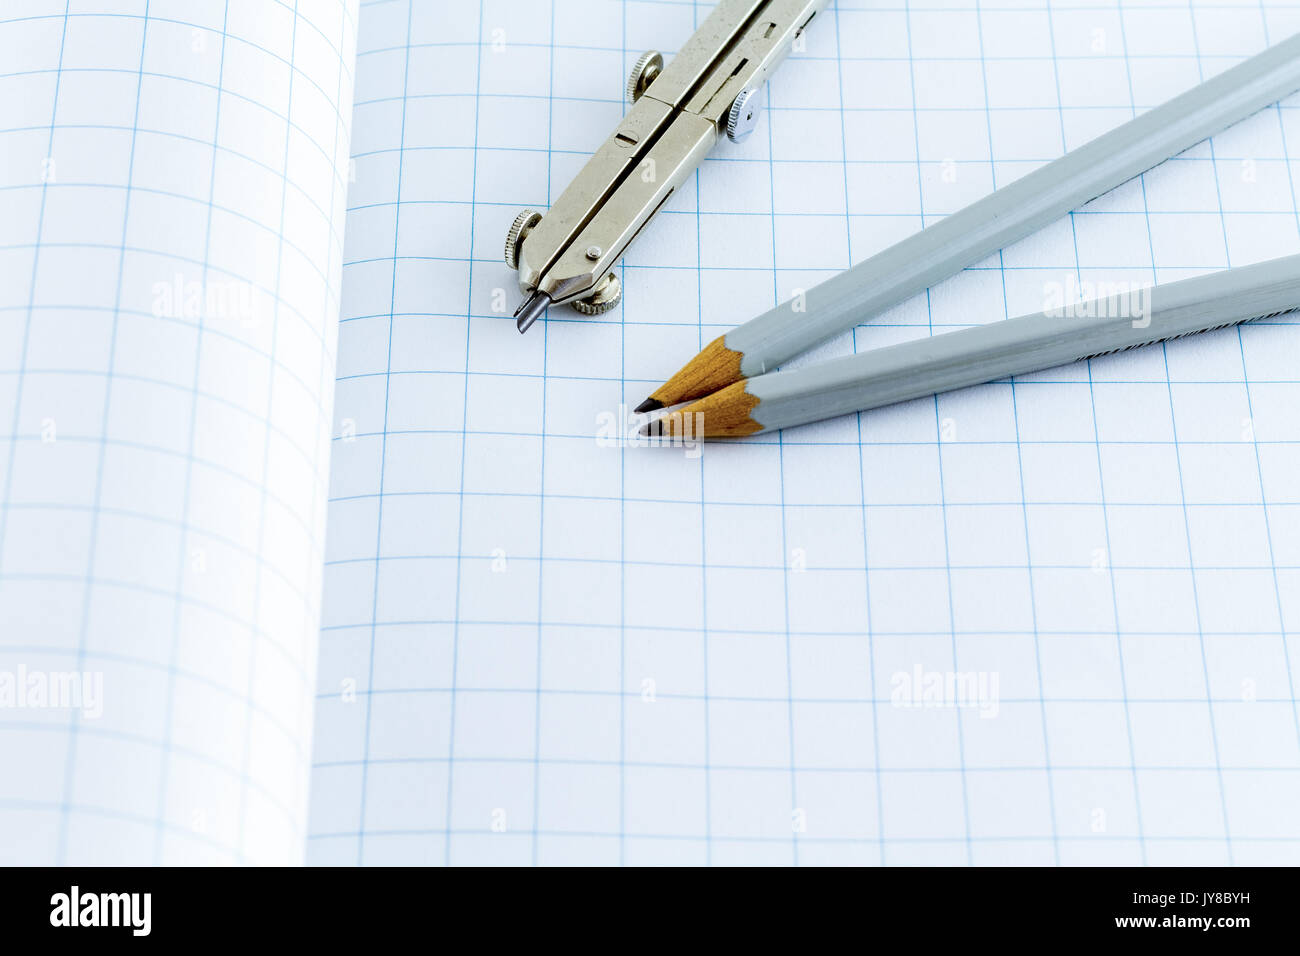 Drafting Compass and pencil - Stock Image